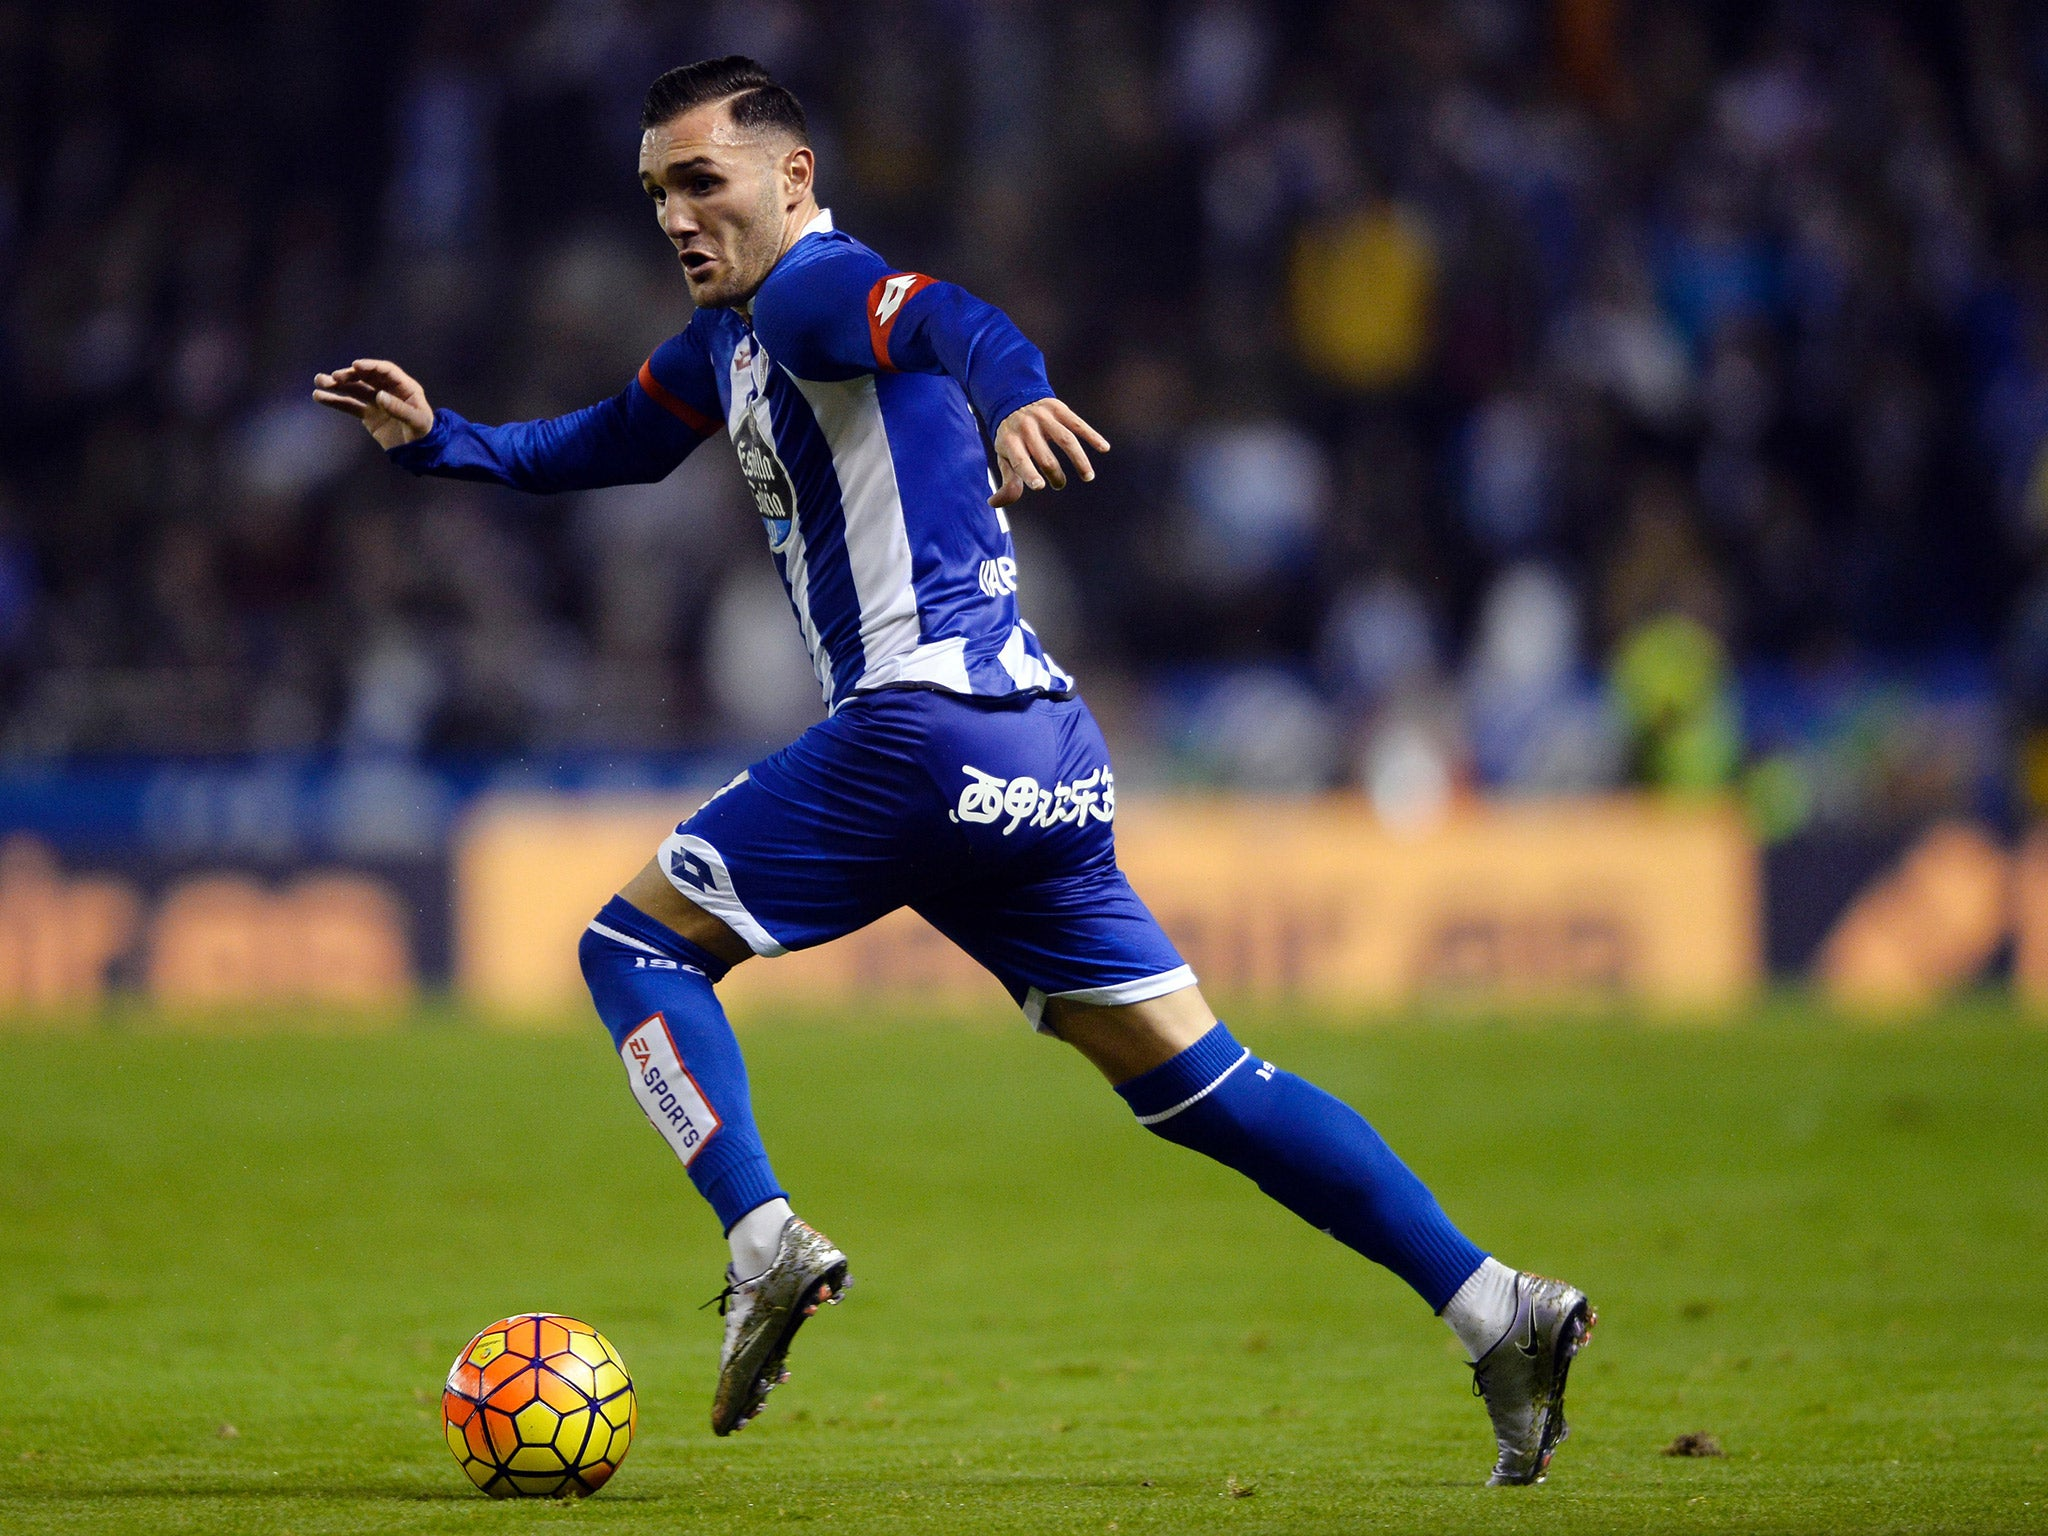 Arsenal transfer news: Gunners 'agree deal' to sign Lucas Perez, Shkodran Mustafi told he can leave Valencia